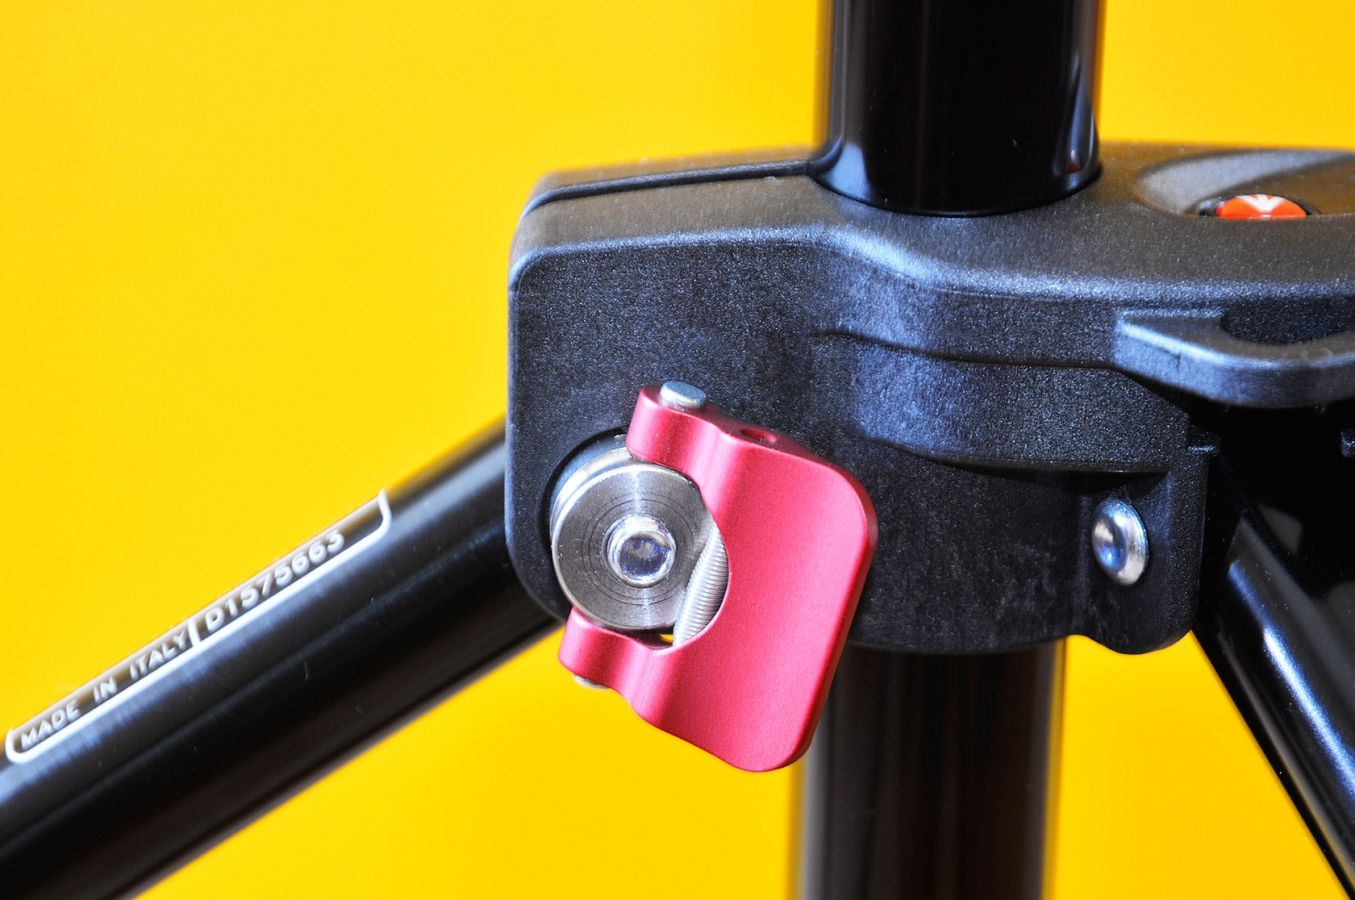 Leg lock on a Manfrotto 1314B background stand.